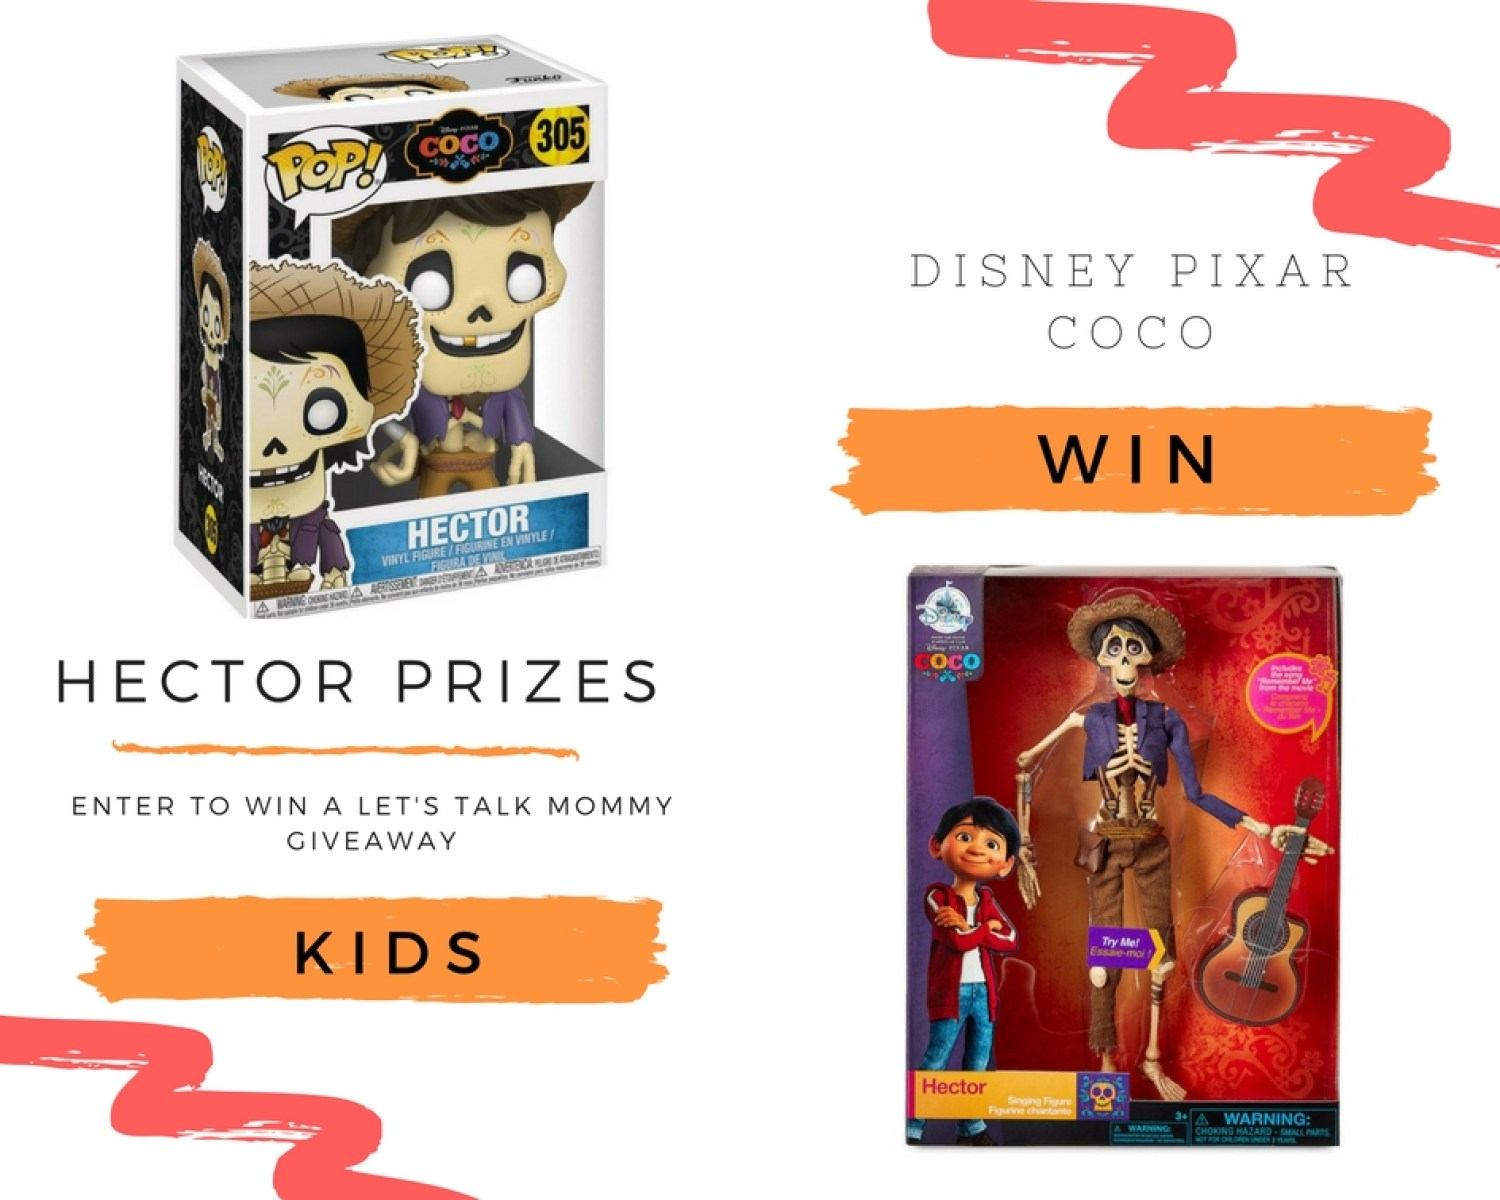 Disney Pixar Coco review and Hector Giveaway